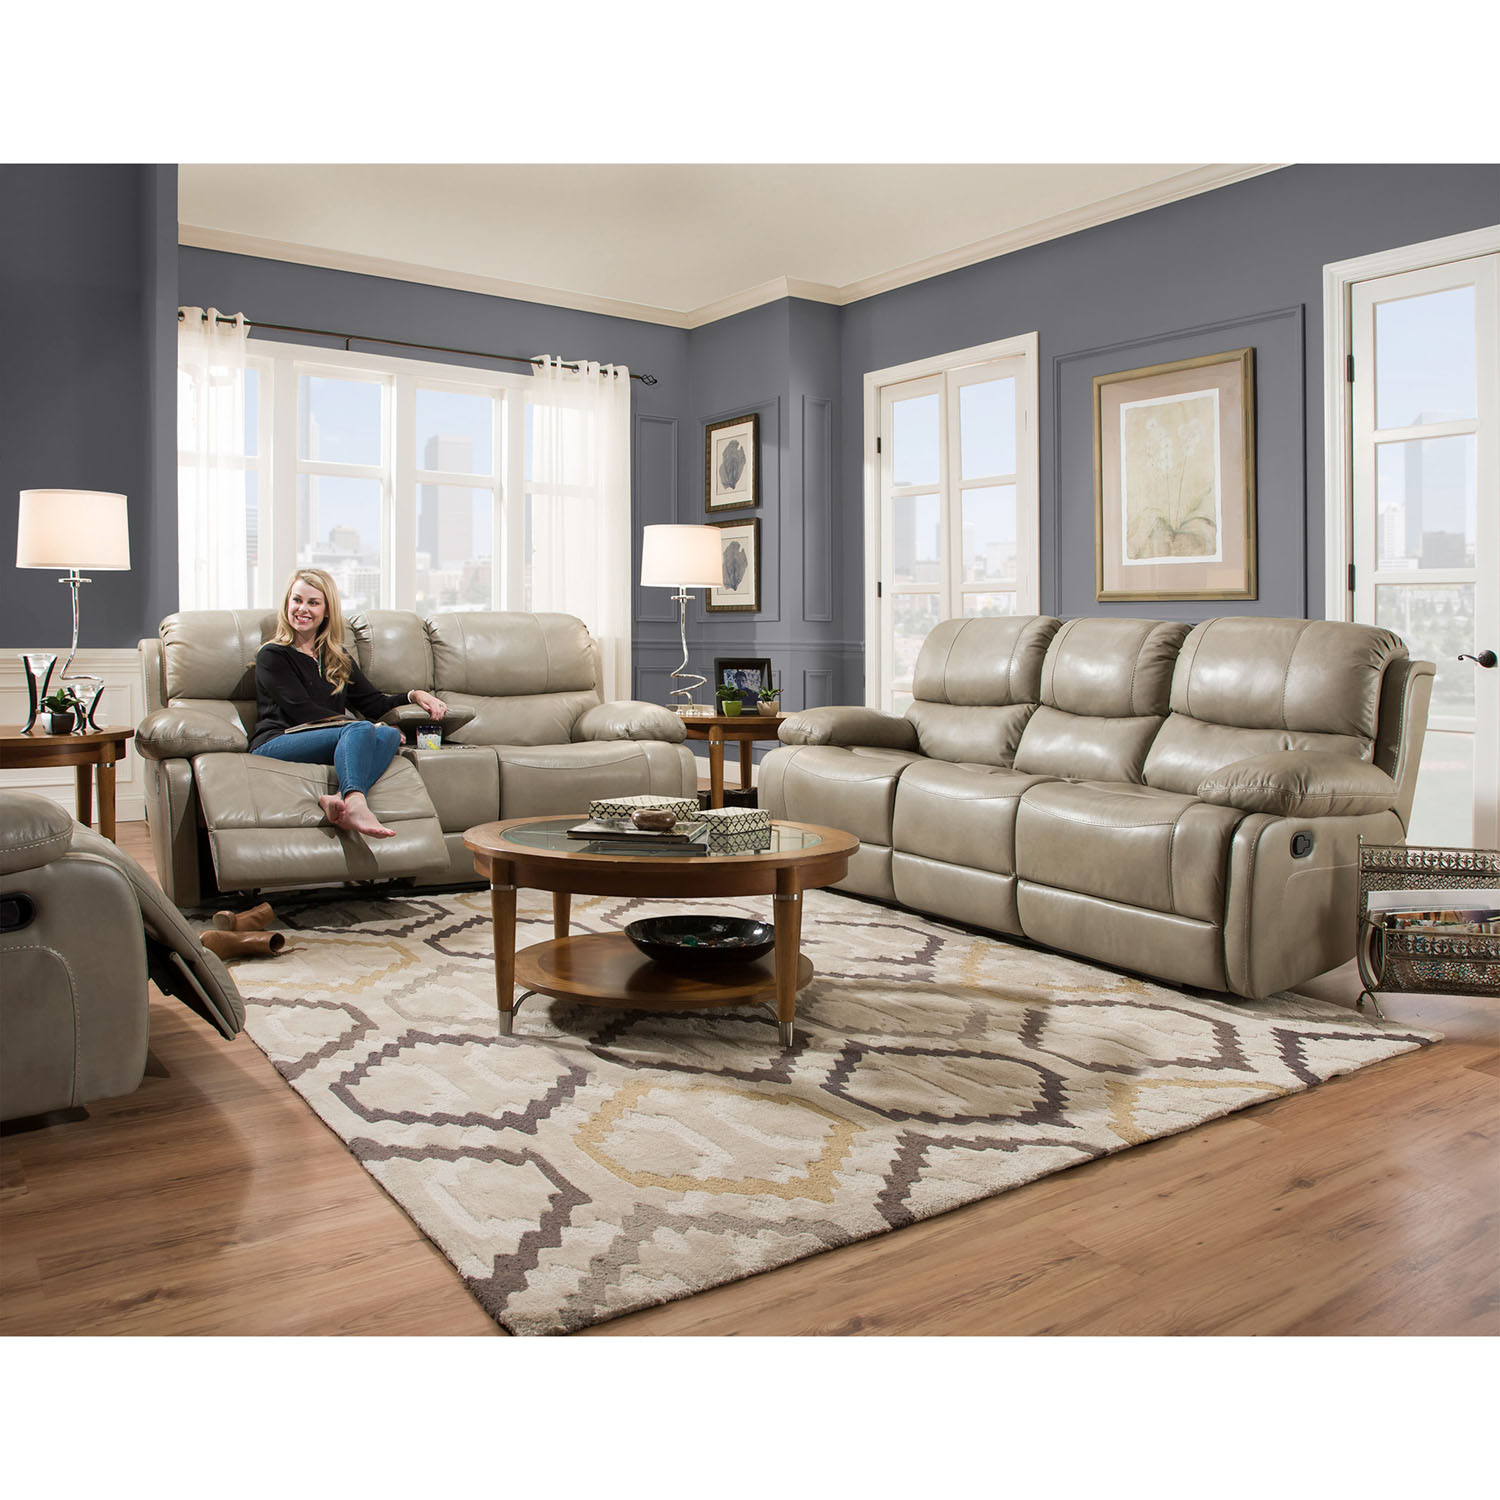 Cambridge Austin 2-Piece Living Room Set: Sofa And